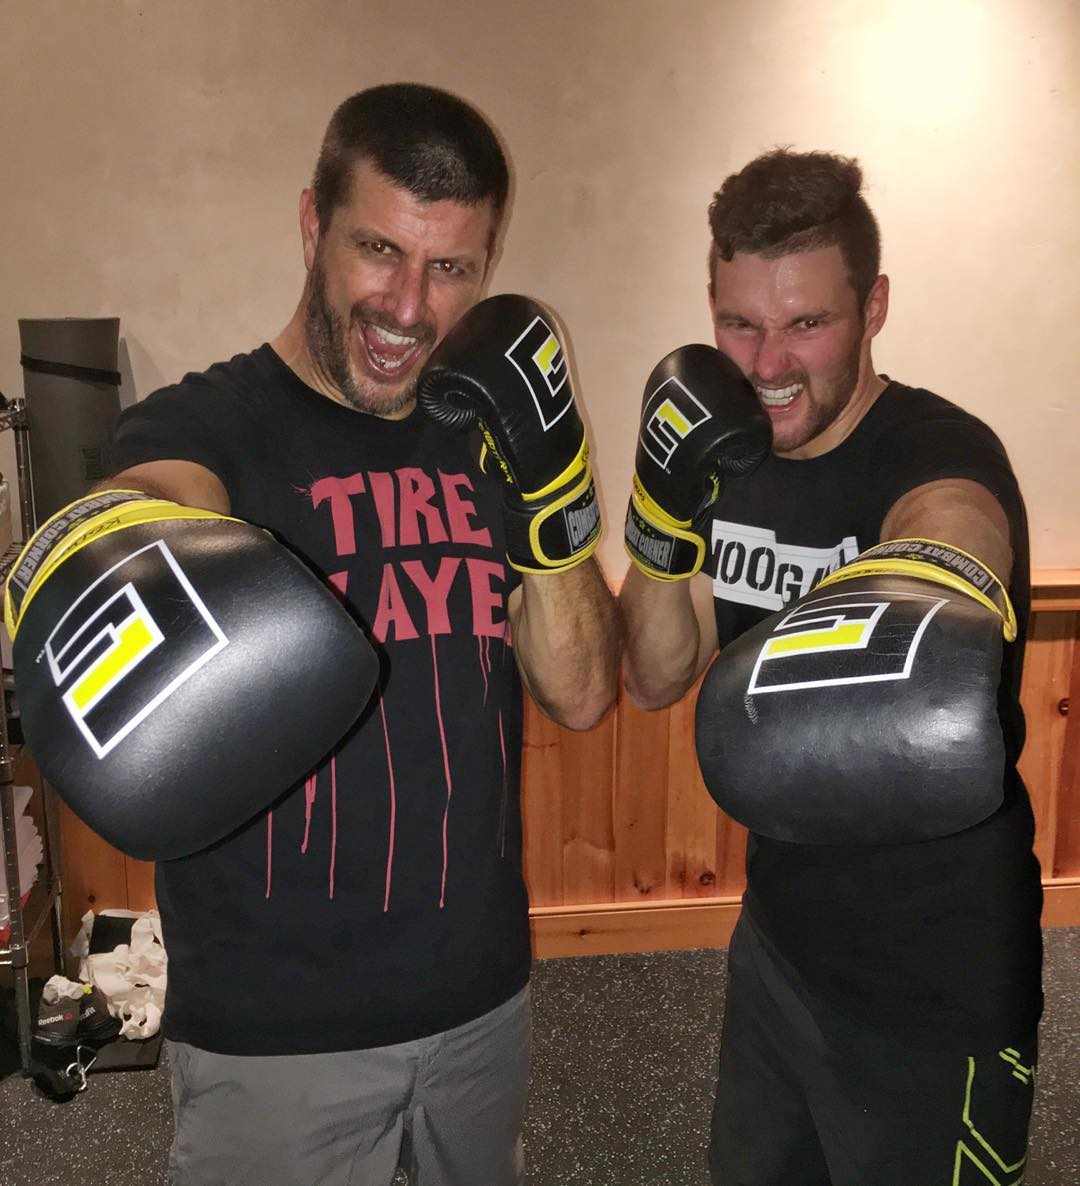 First workout for @AndreasBakkerud and I with @HooniganRacing trainer @KitCope is in the books! It felt good to get back to training. Andreas comes equipped with good kick-boxing skills already, so we had a solid first training session. Only three...